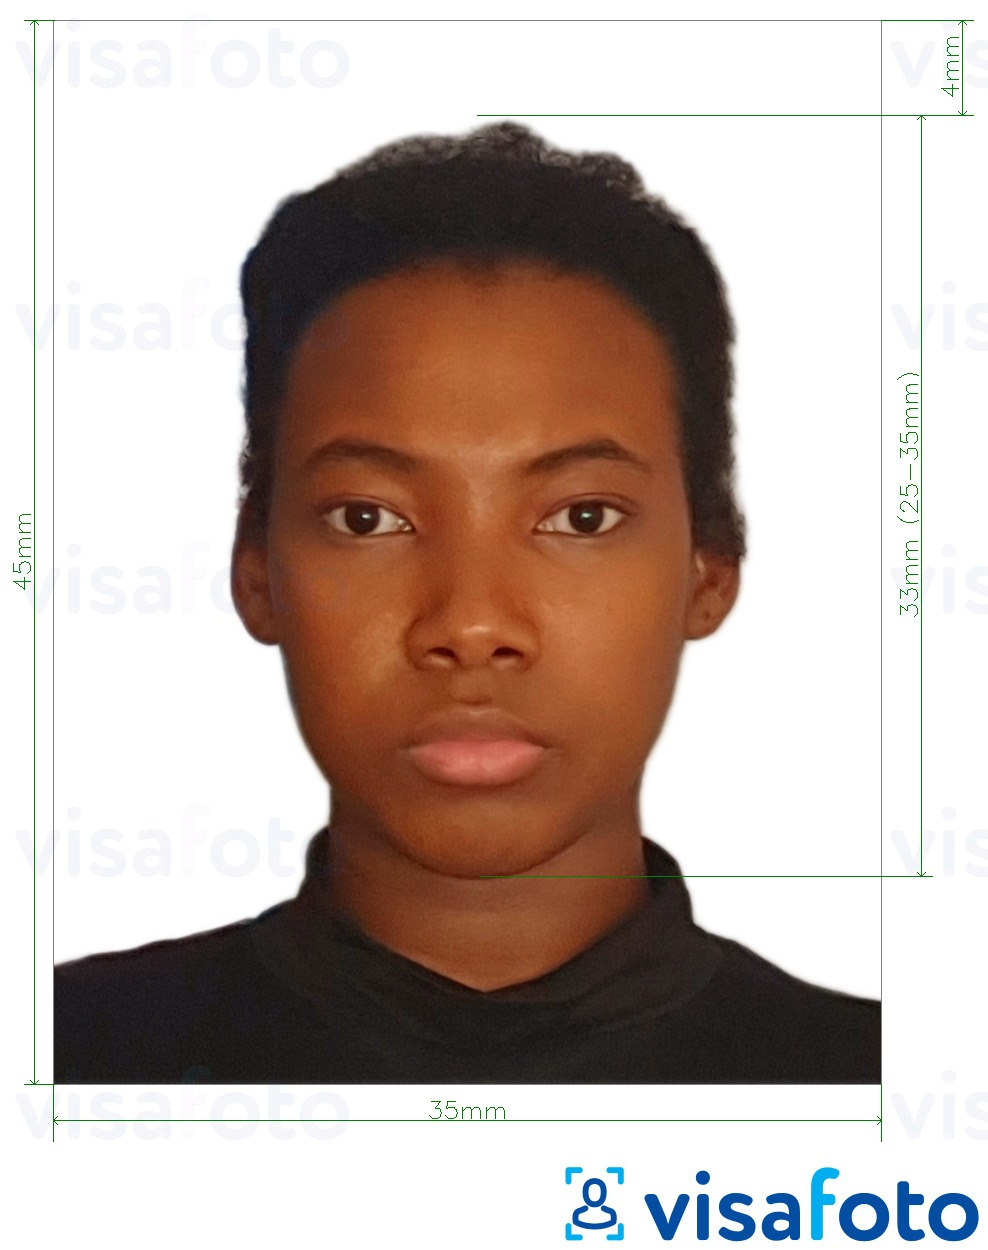 Example of photo for Jamaica passport 35x45 mm (3.5x4.5 cm) with exact size specification